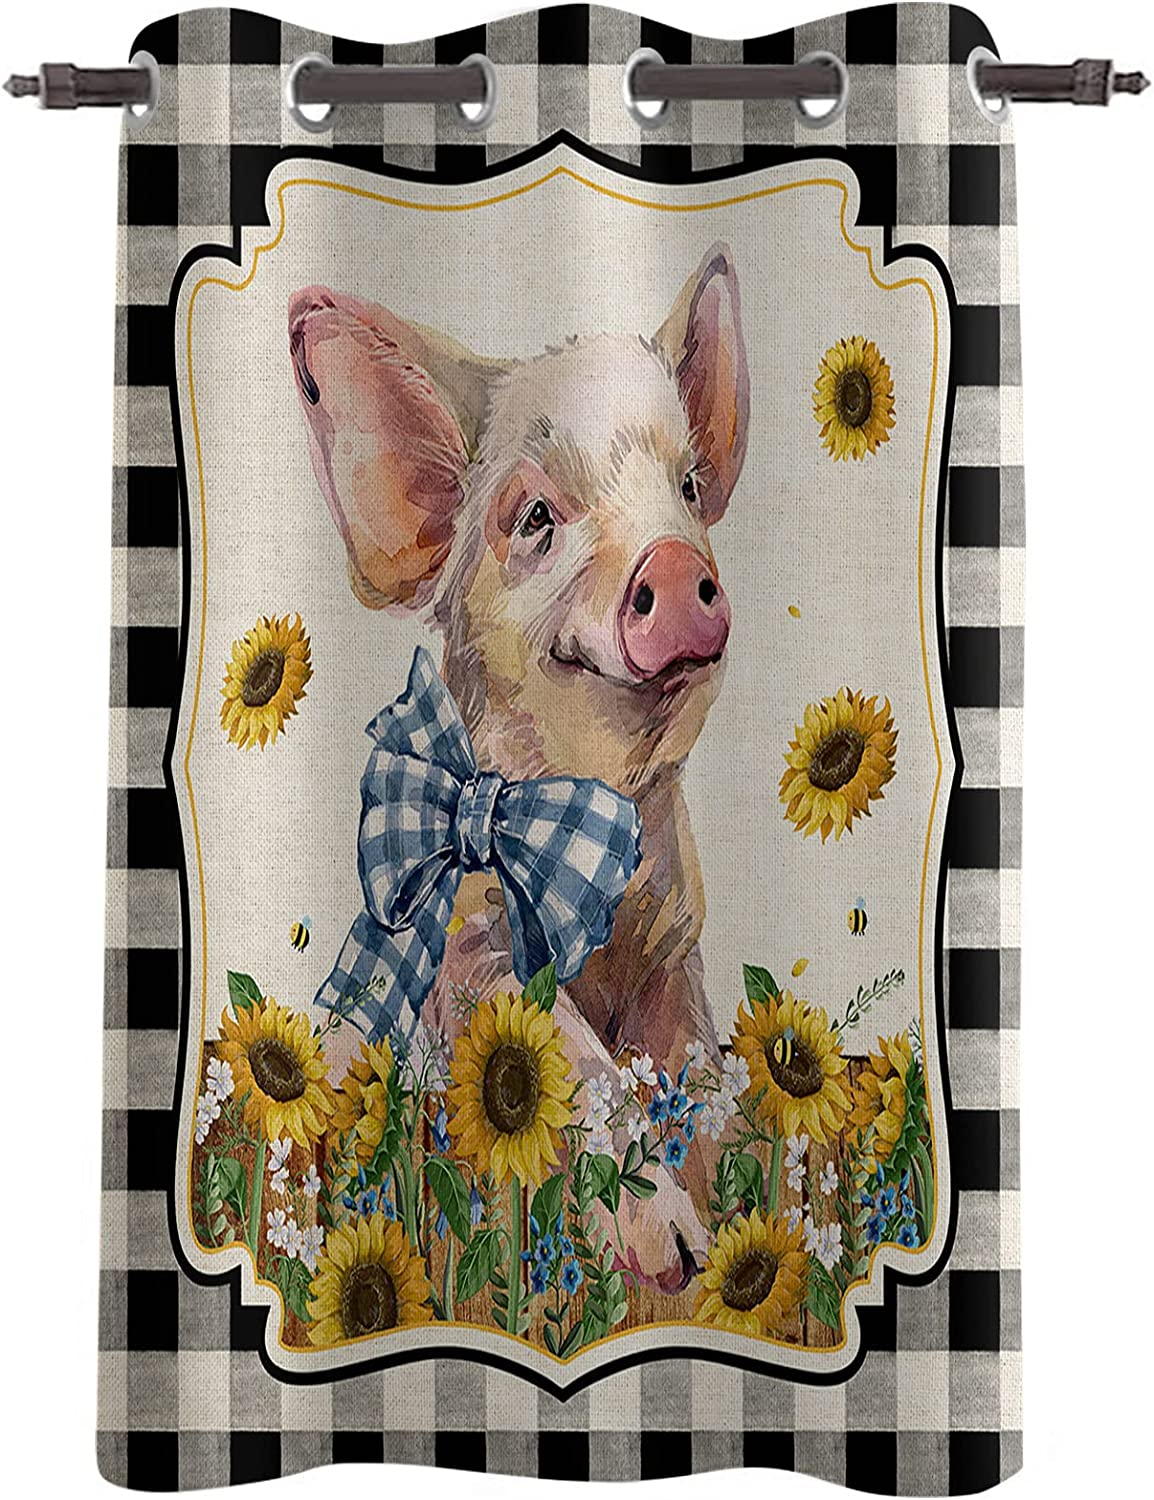 Window 2021 Curtains Blackout Curtain Panels for Washington Mall w Cute Bedroom Piggy